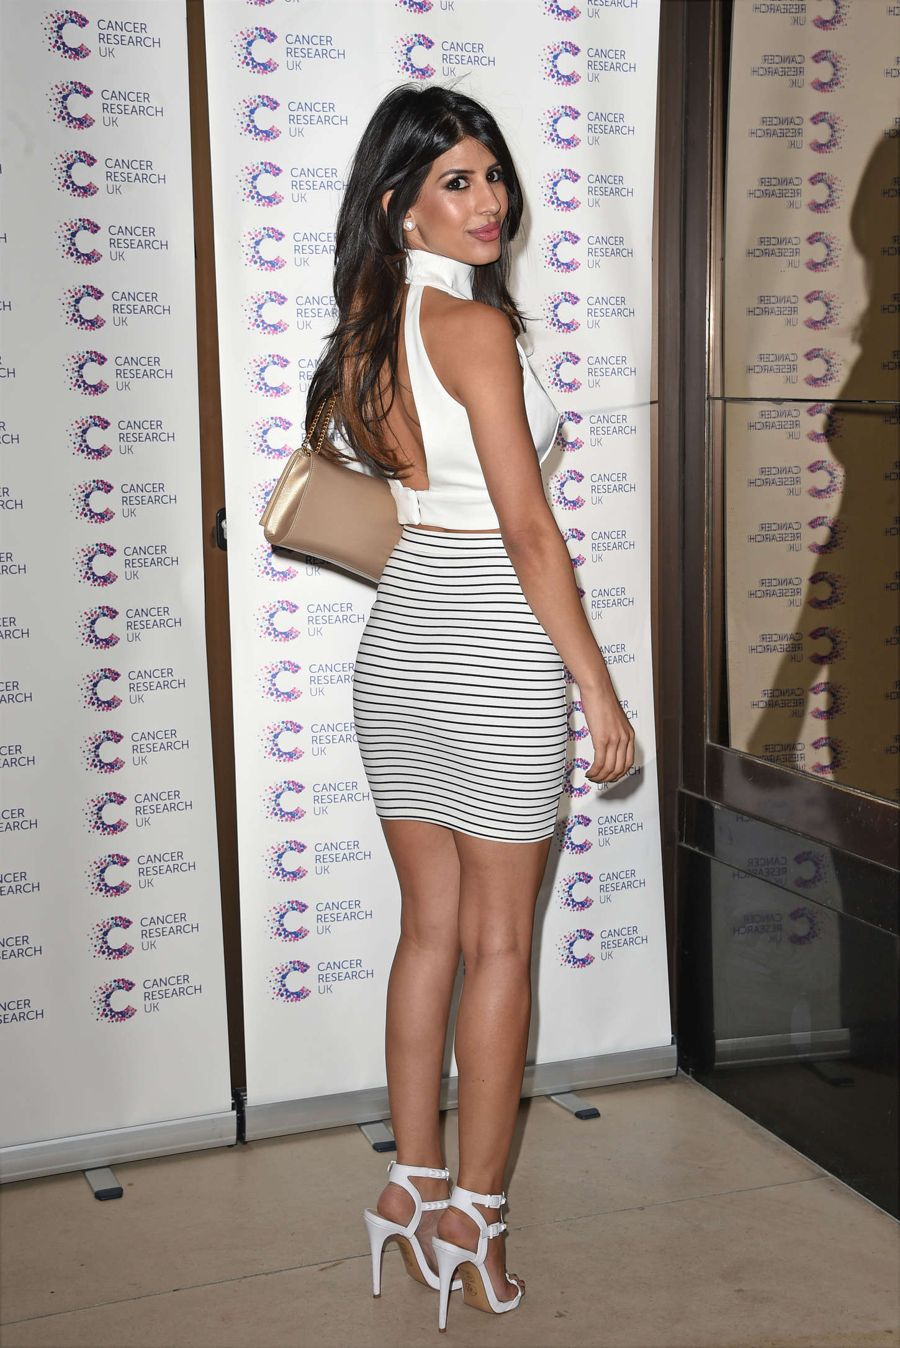 Jasmin Walia - Marathon Cancer Fundraising Event